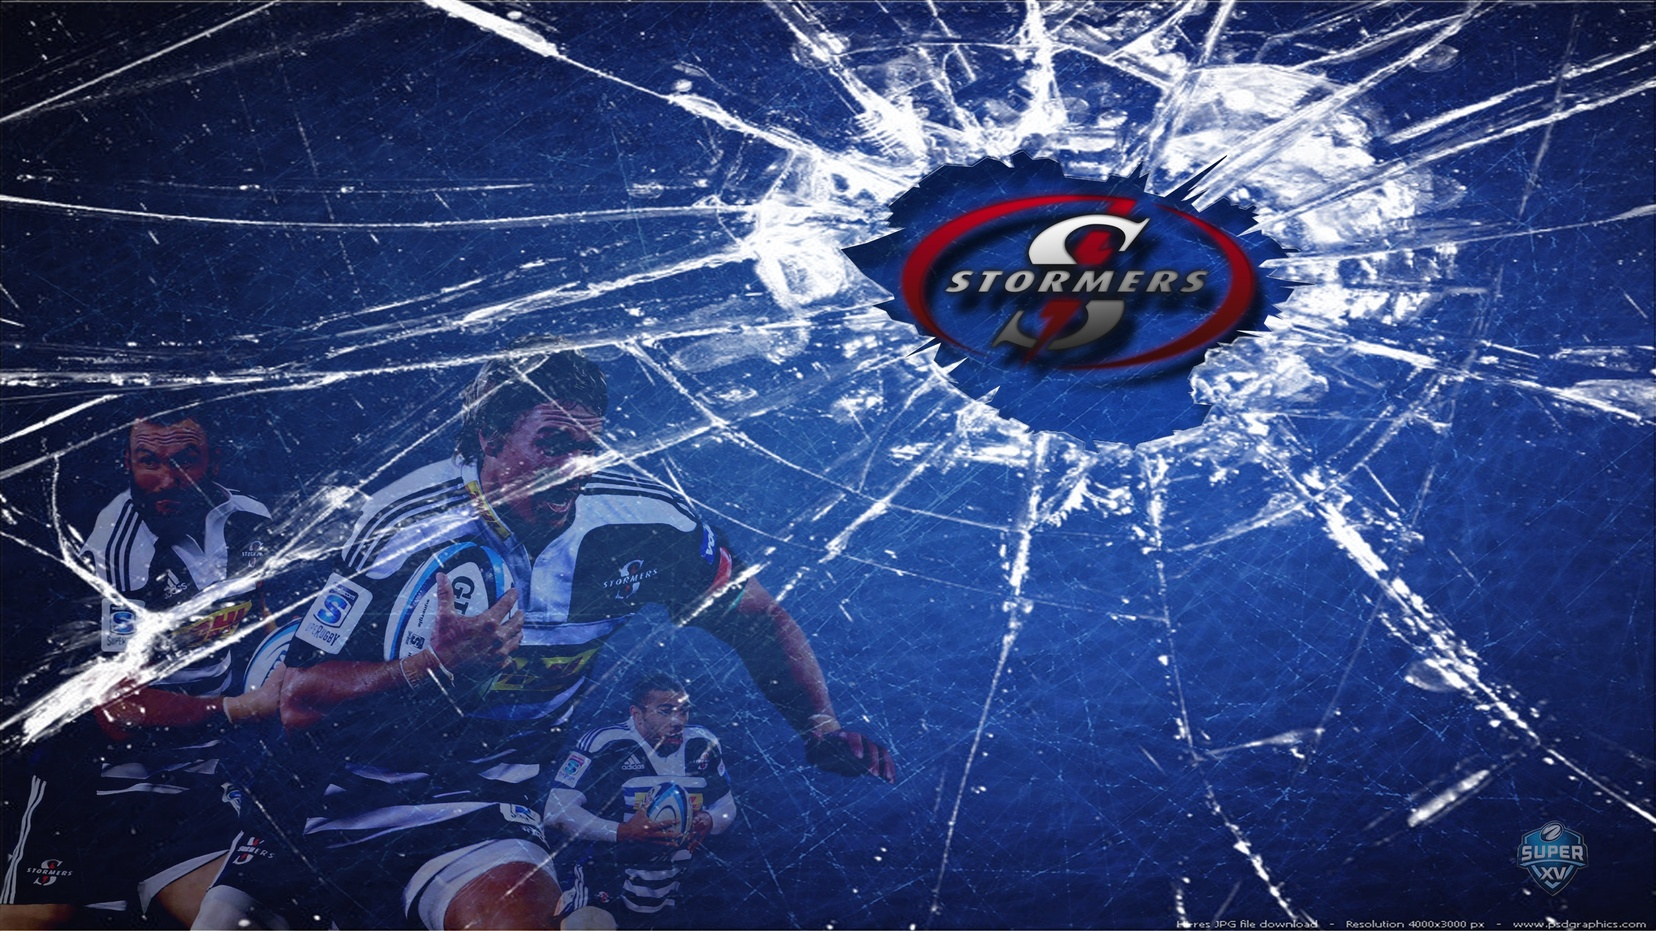 Stormers Download Hd Wallpapers And Free Images